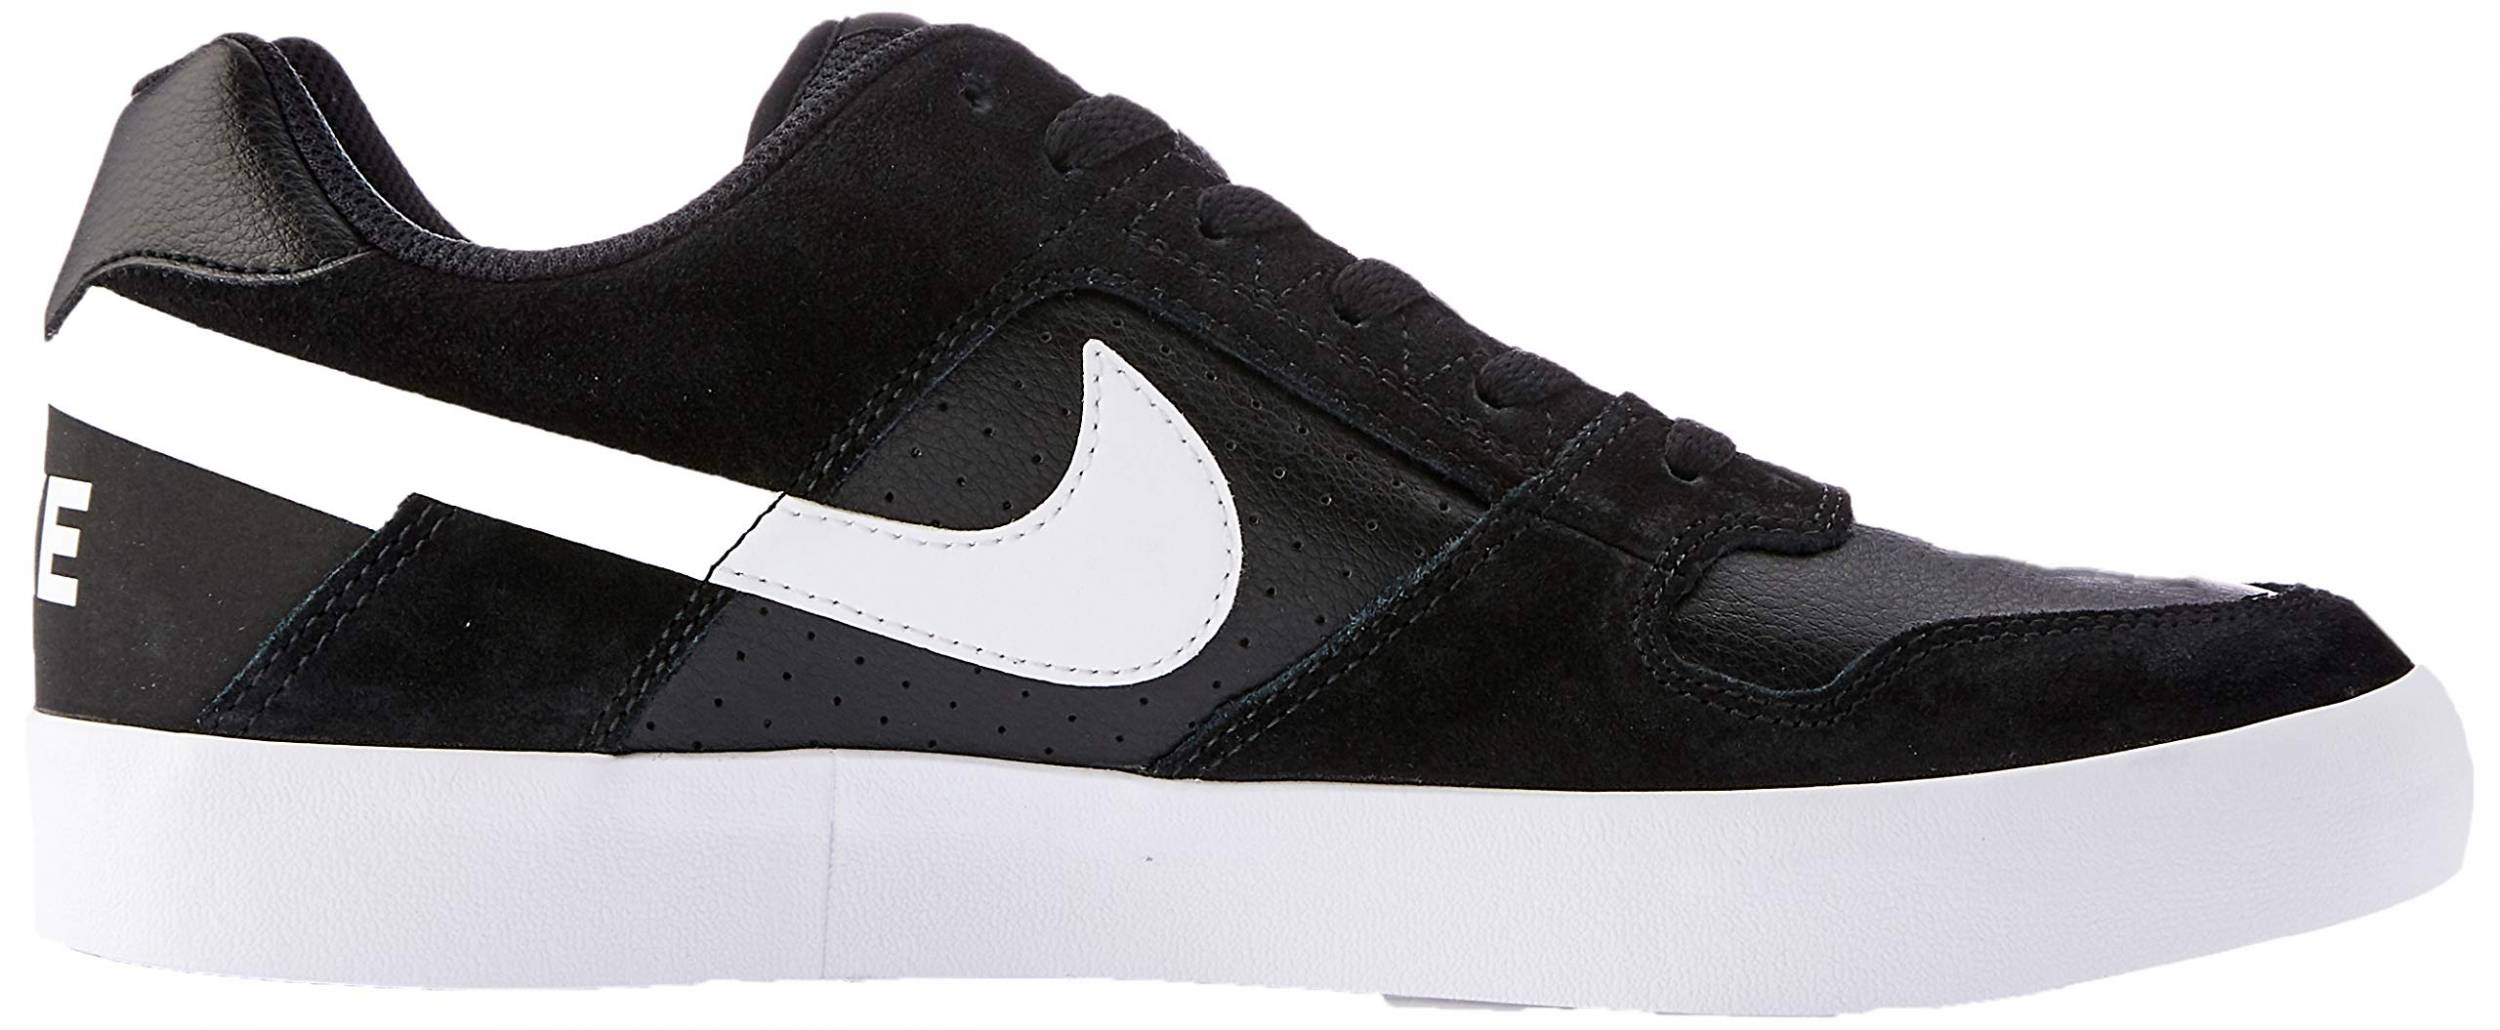 Mus Persona a cargo Beber agua  Nike SB Delta Force Vulc sneakers in 3 colors | RunRepeat